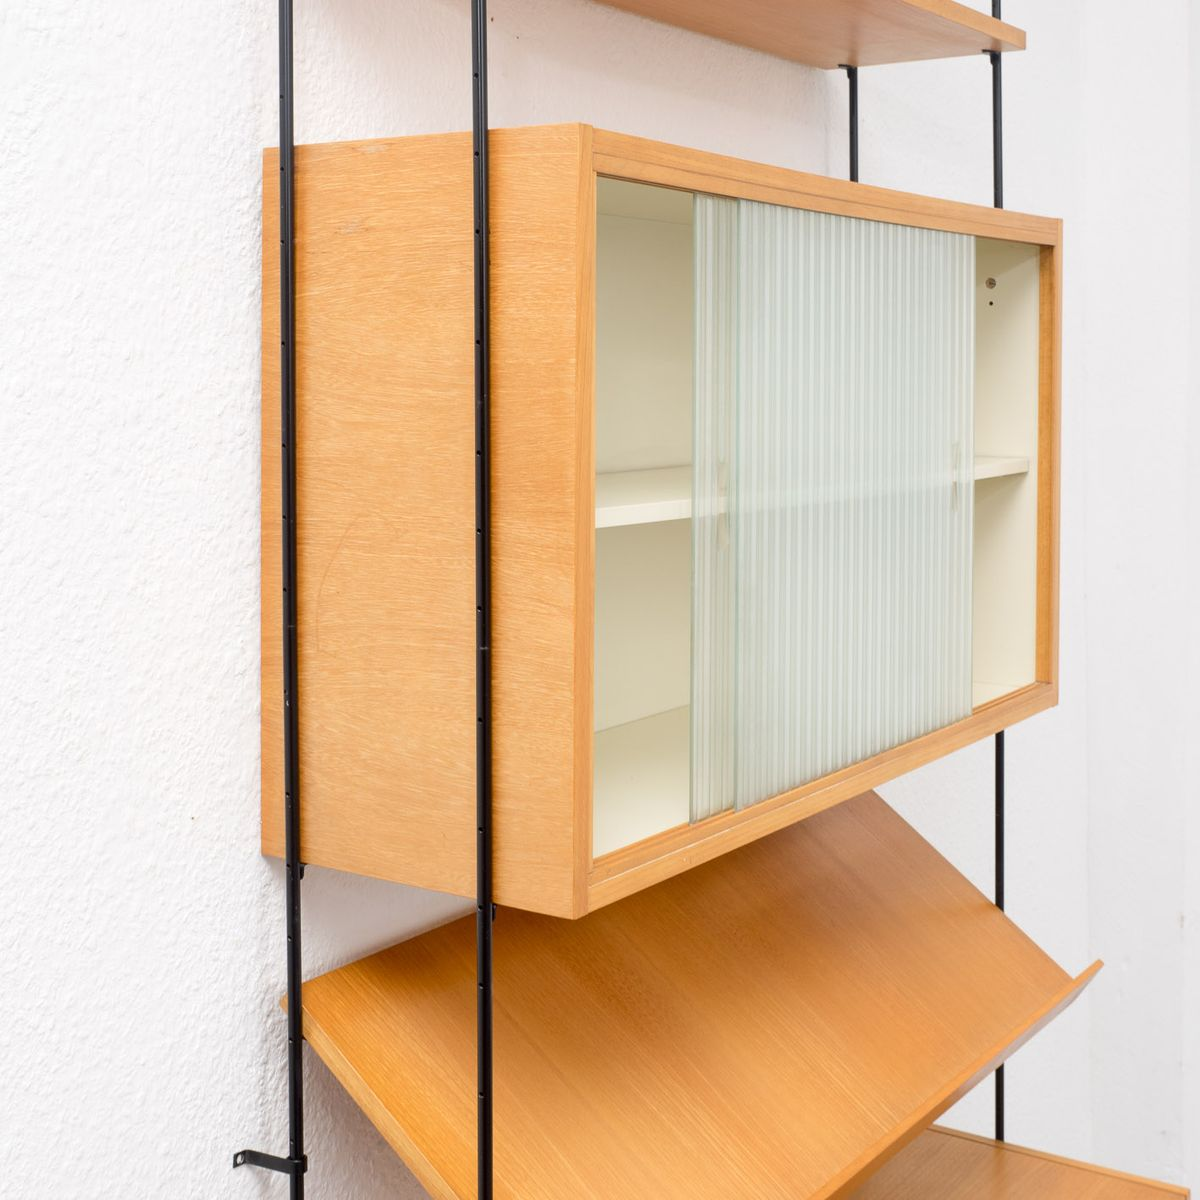 Modular Shelving System from Hilker for sale at Pamono